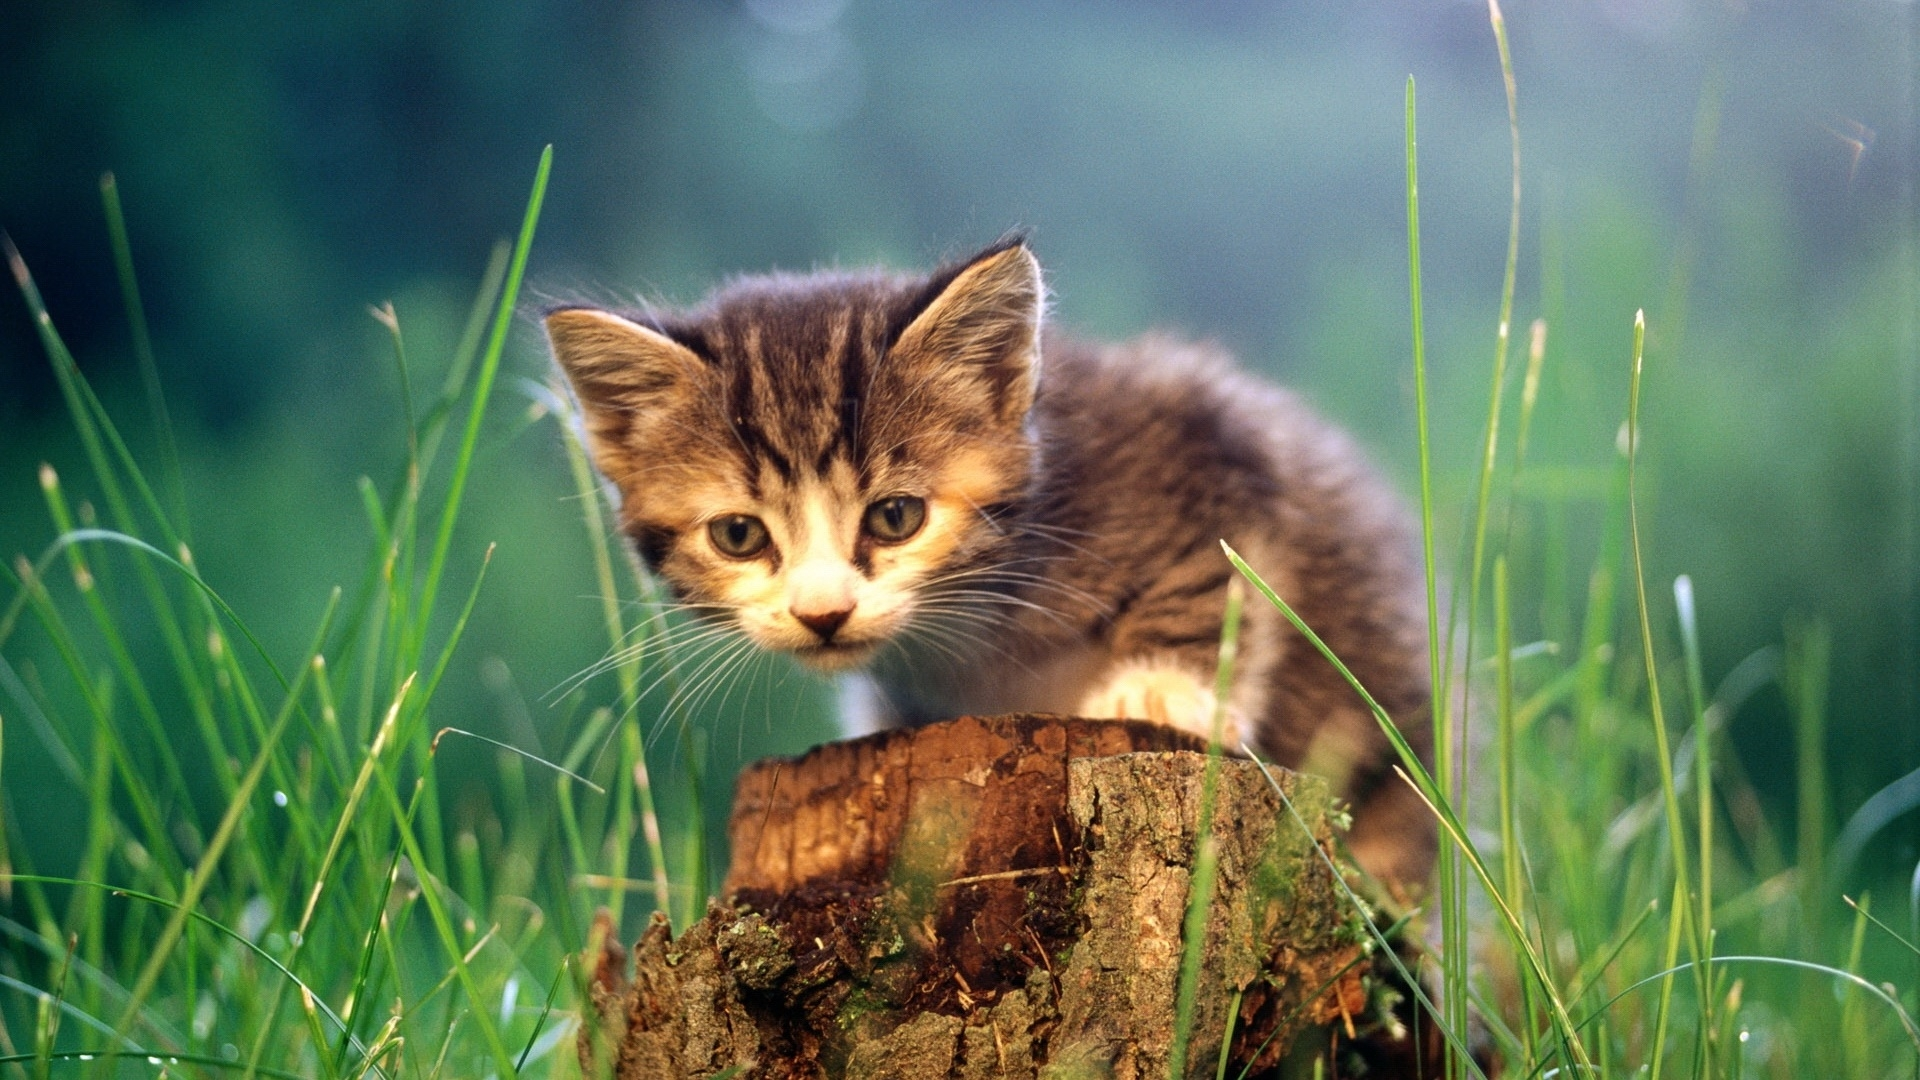 49567 download wallpaper Animals, Cats screensavers and pictures for free